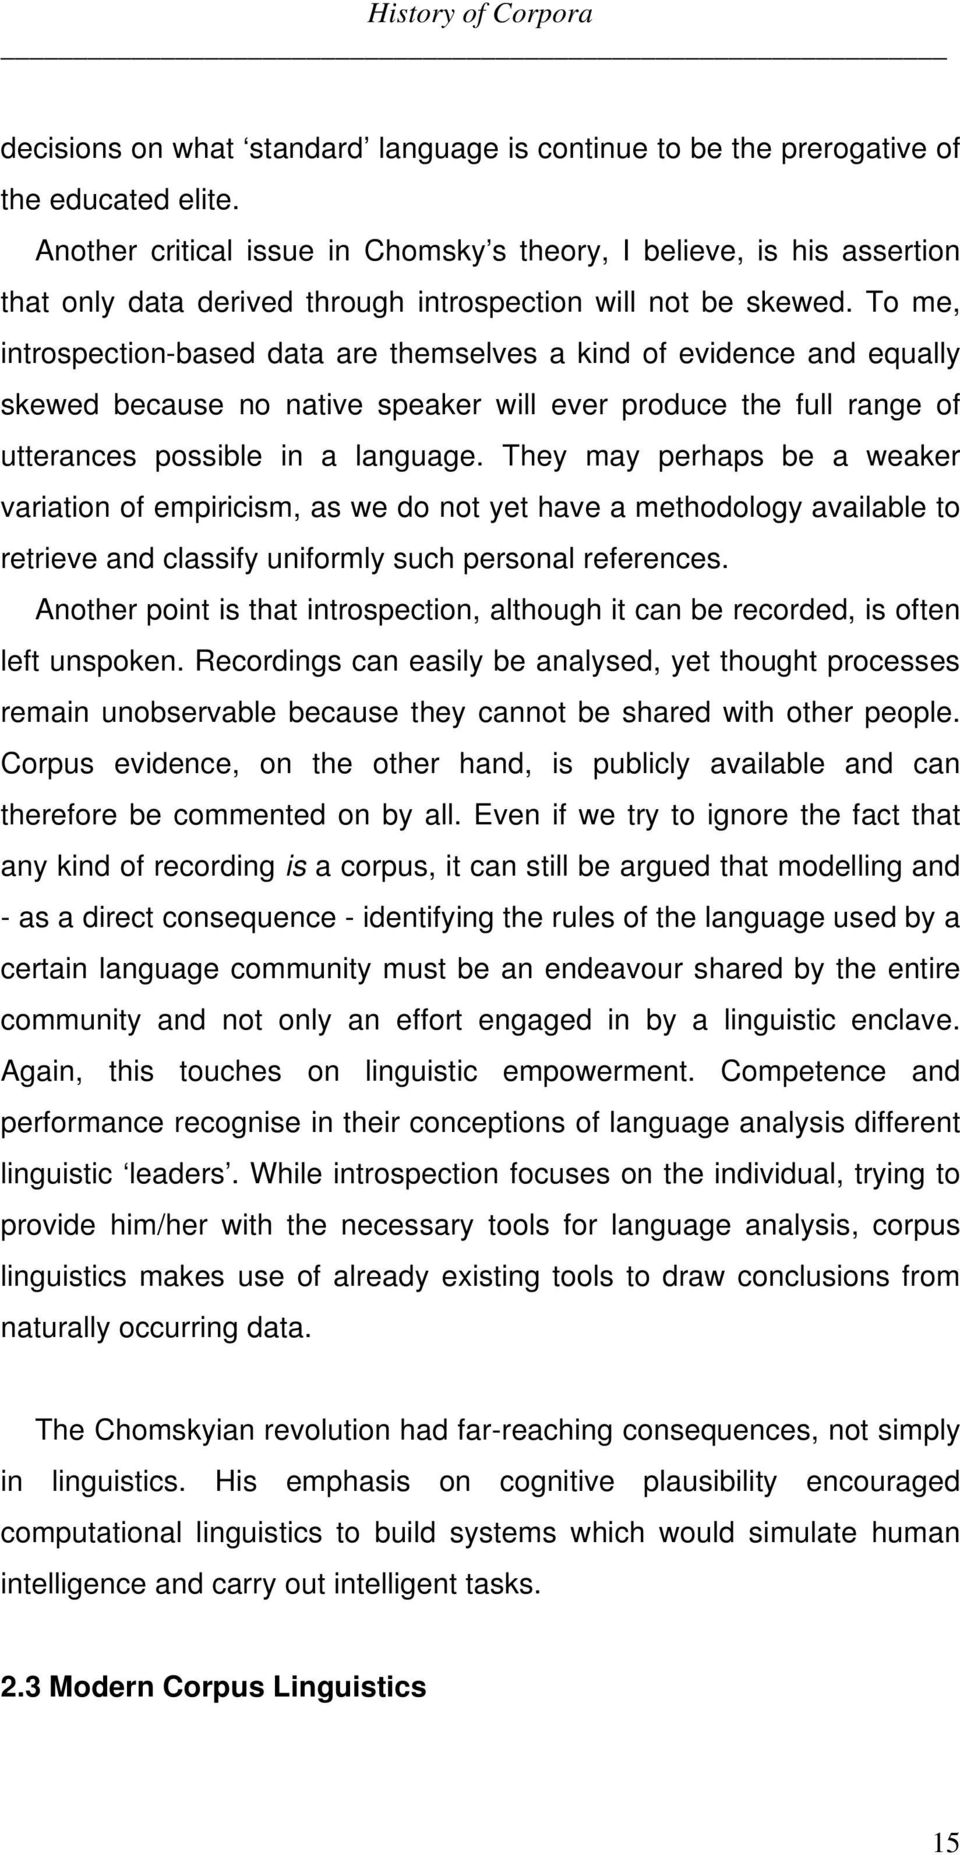 To me, introspection-based data are themselves a kind of evidence and equally skewed because no native speaker will ever produce the full range of utterances possible in a language.